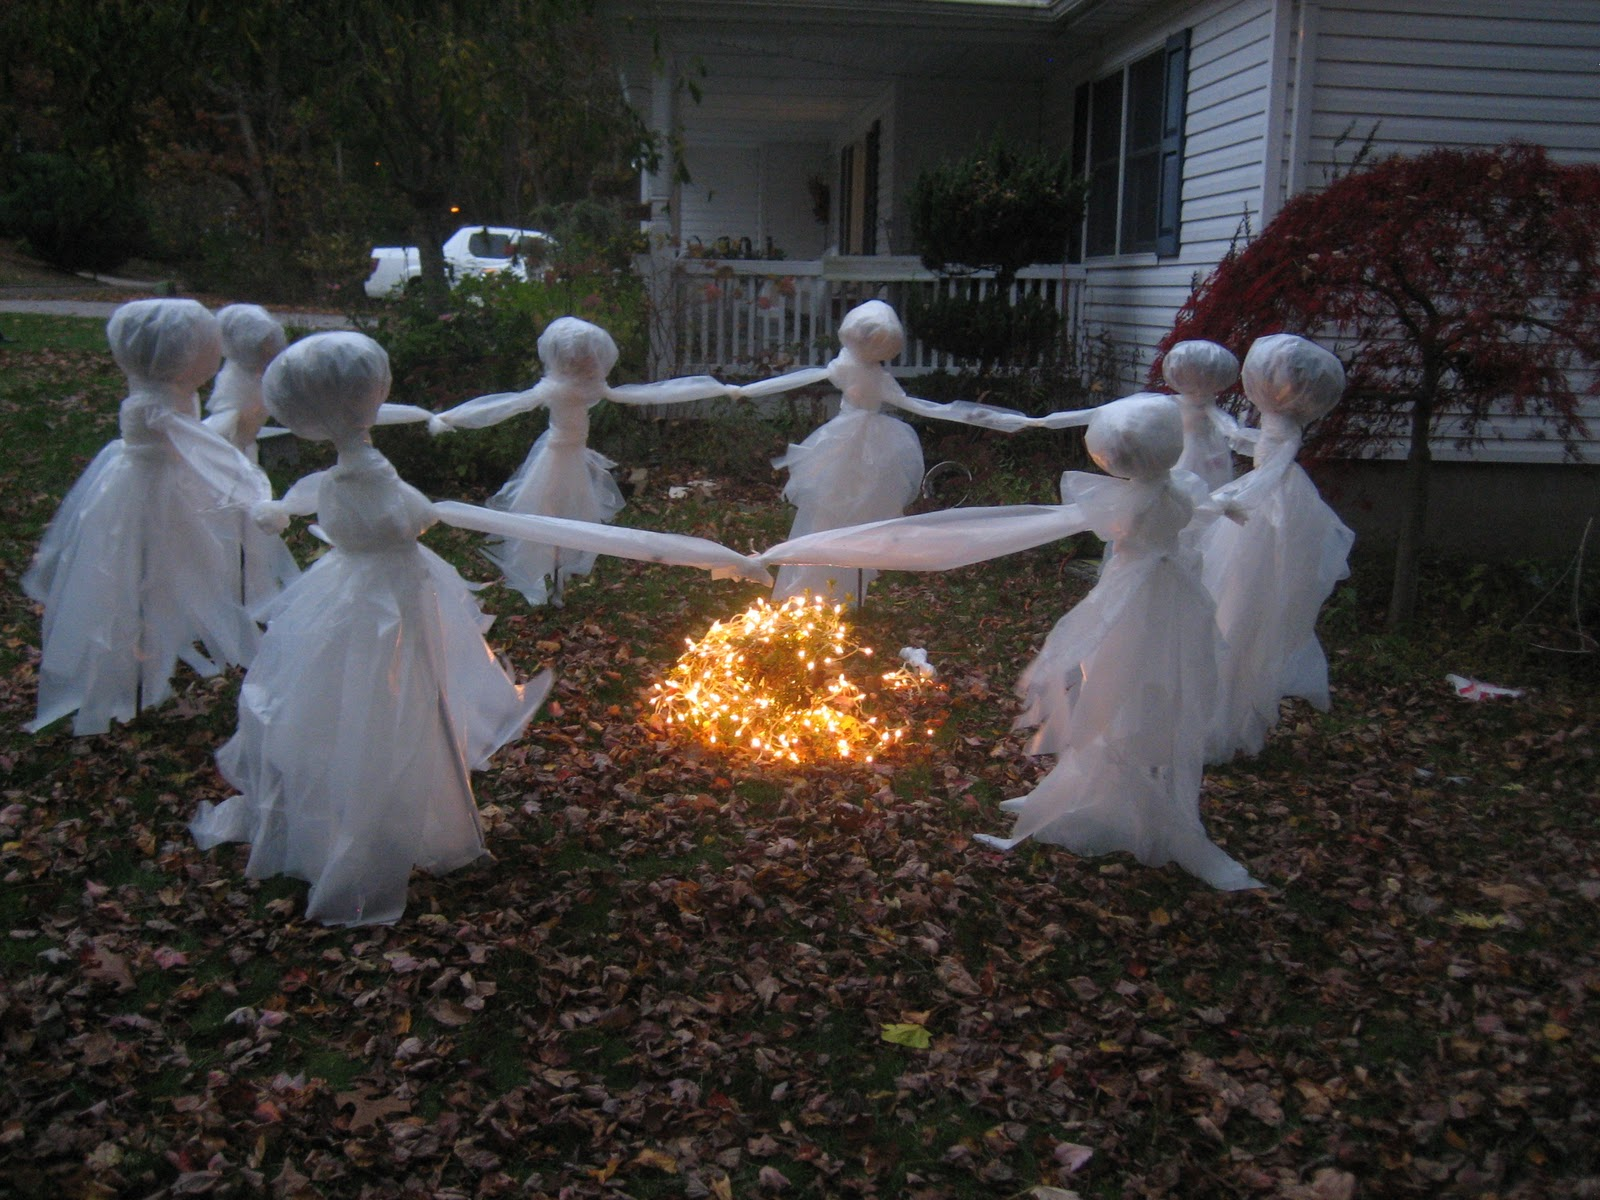 Andrea Macias (maukchacha) on Pinterest - How To Make Halloween Decorations